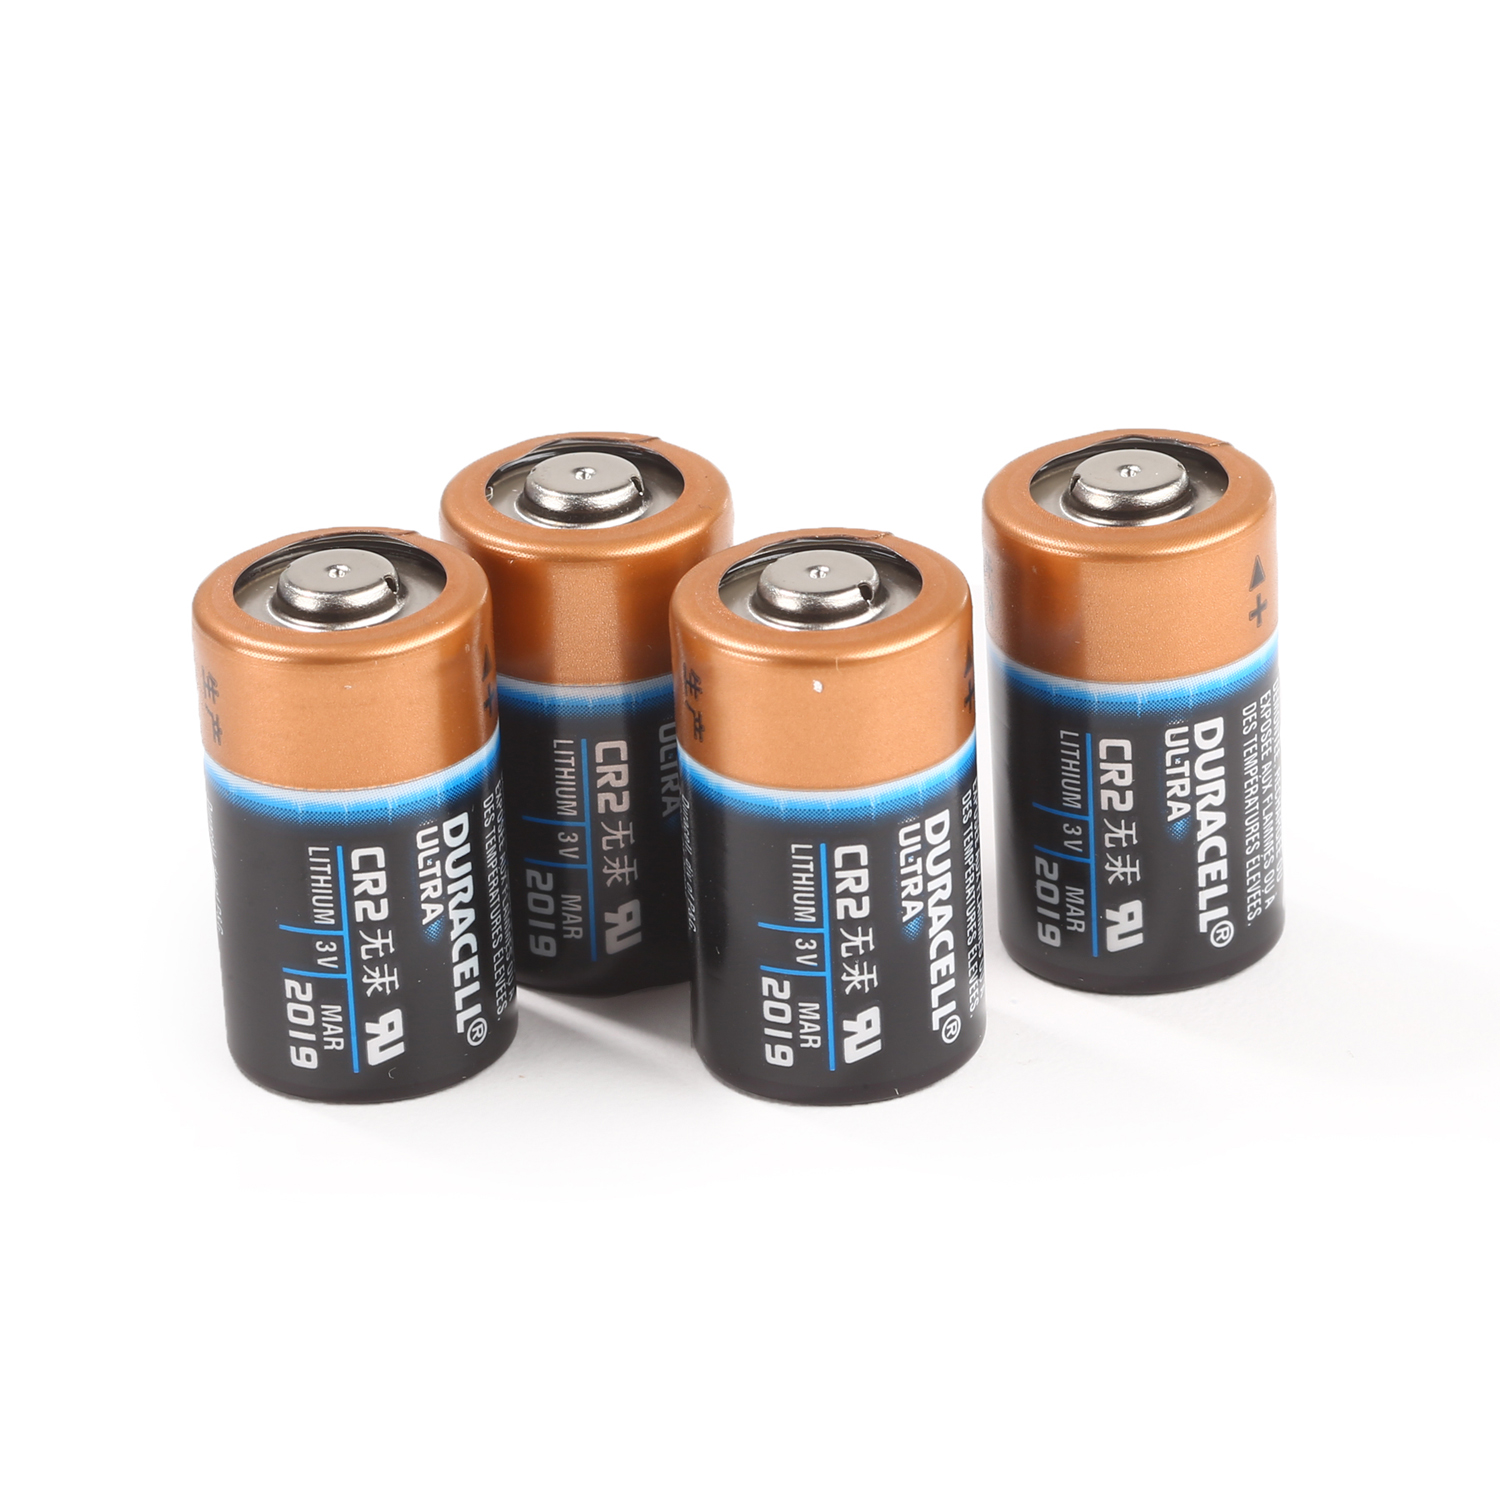 Duracell Ultra Lithium 3V CR2 Batteries 4-Pack